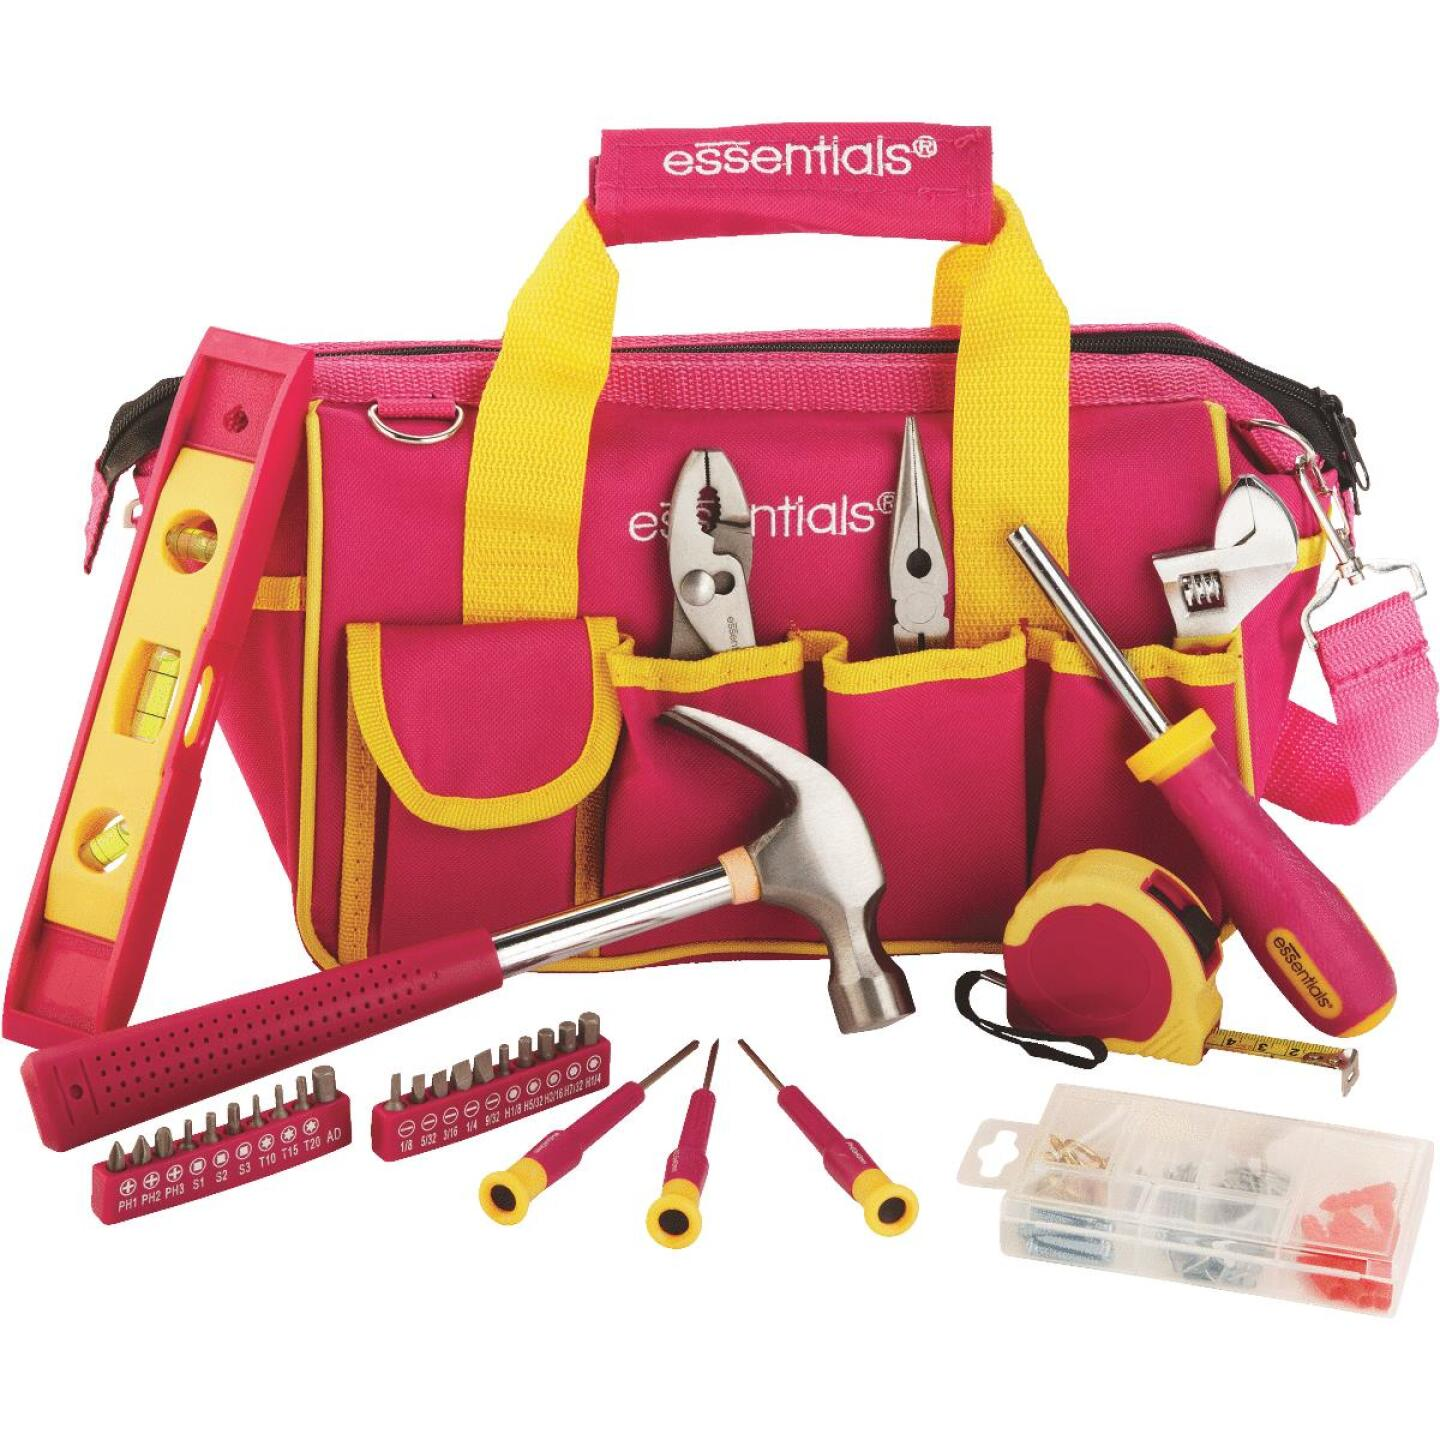 Essentials Around-the-House Homeowner's Tool Set with Pink Tool Bag (32-Piece) Image 1